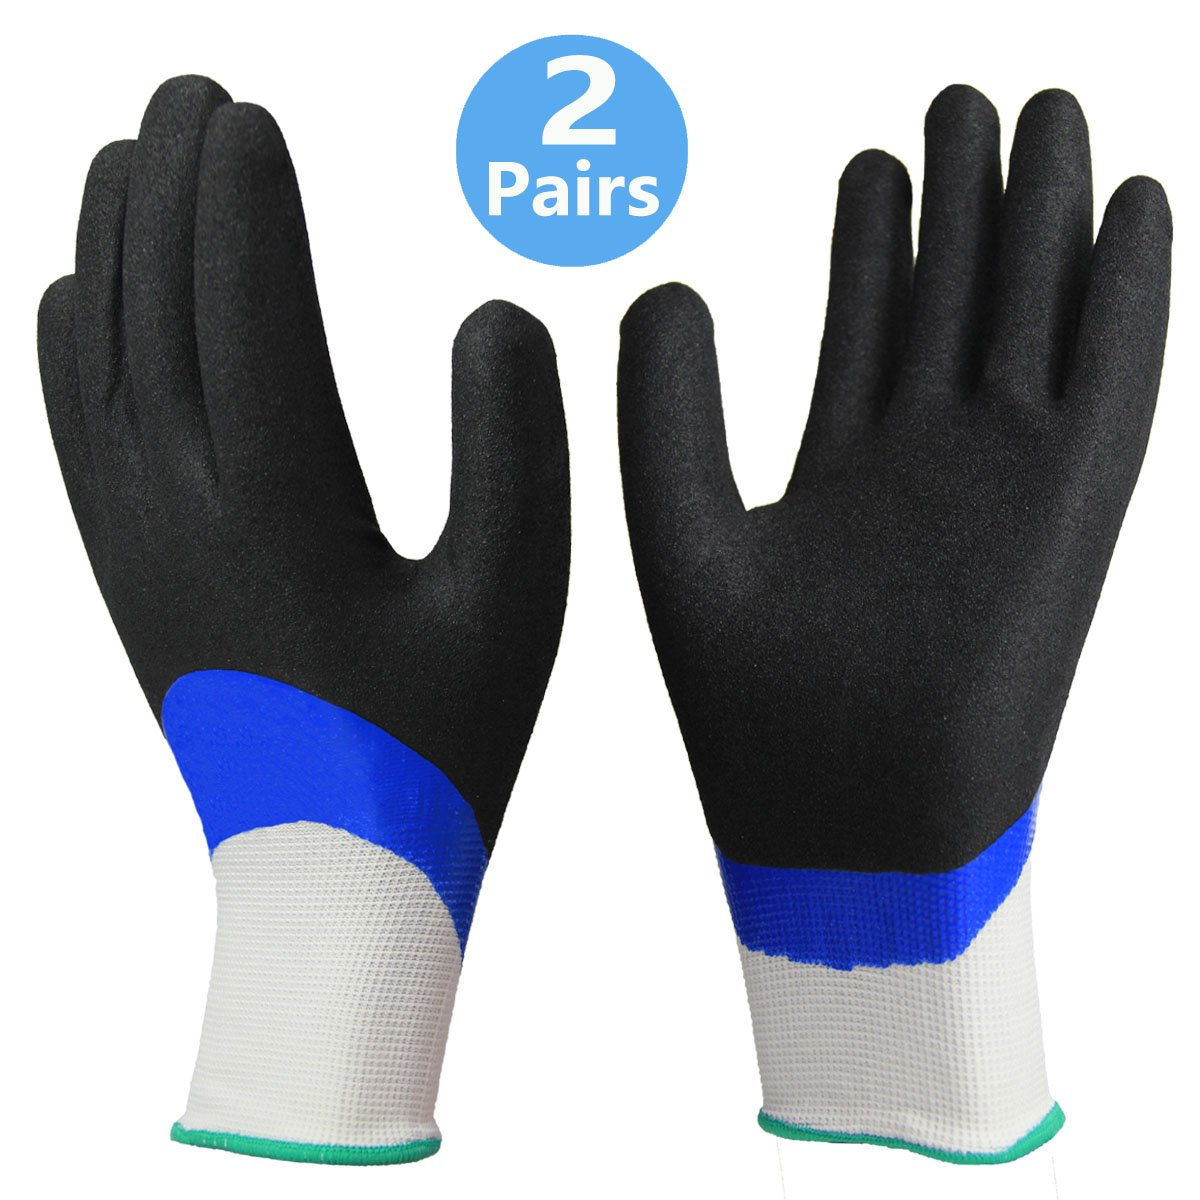 Waterproof Work Gloves 2 Pairs, Double Latex Coated Grip and Comfortable, Improved Dexterity for Outdoor Garden Watering Car Cleaning Multipurpose -2 Pack